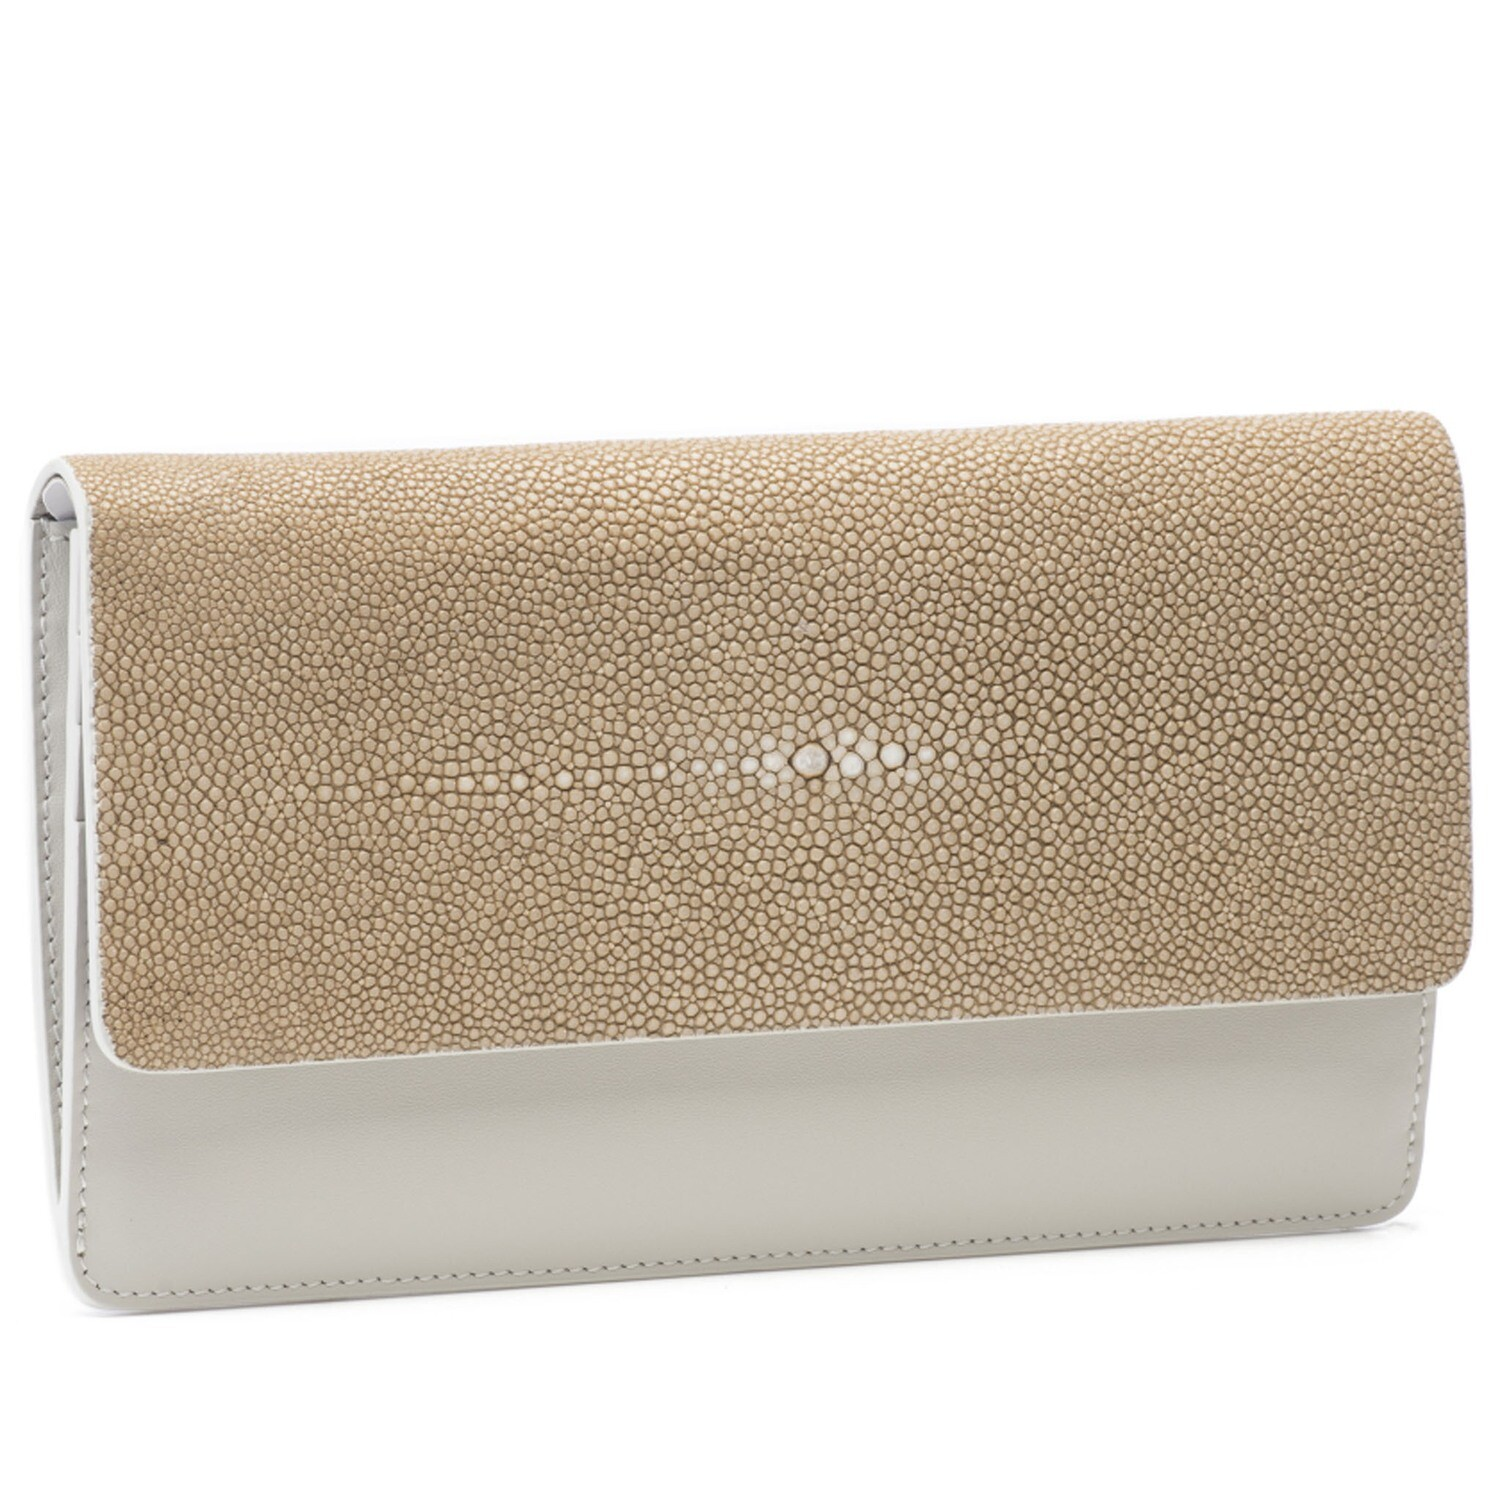 Camel Shagreen and Putty Leather Clutch